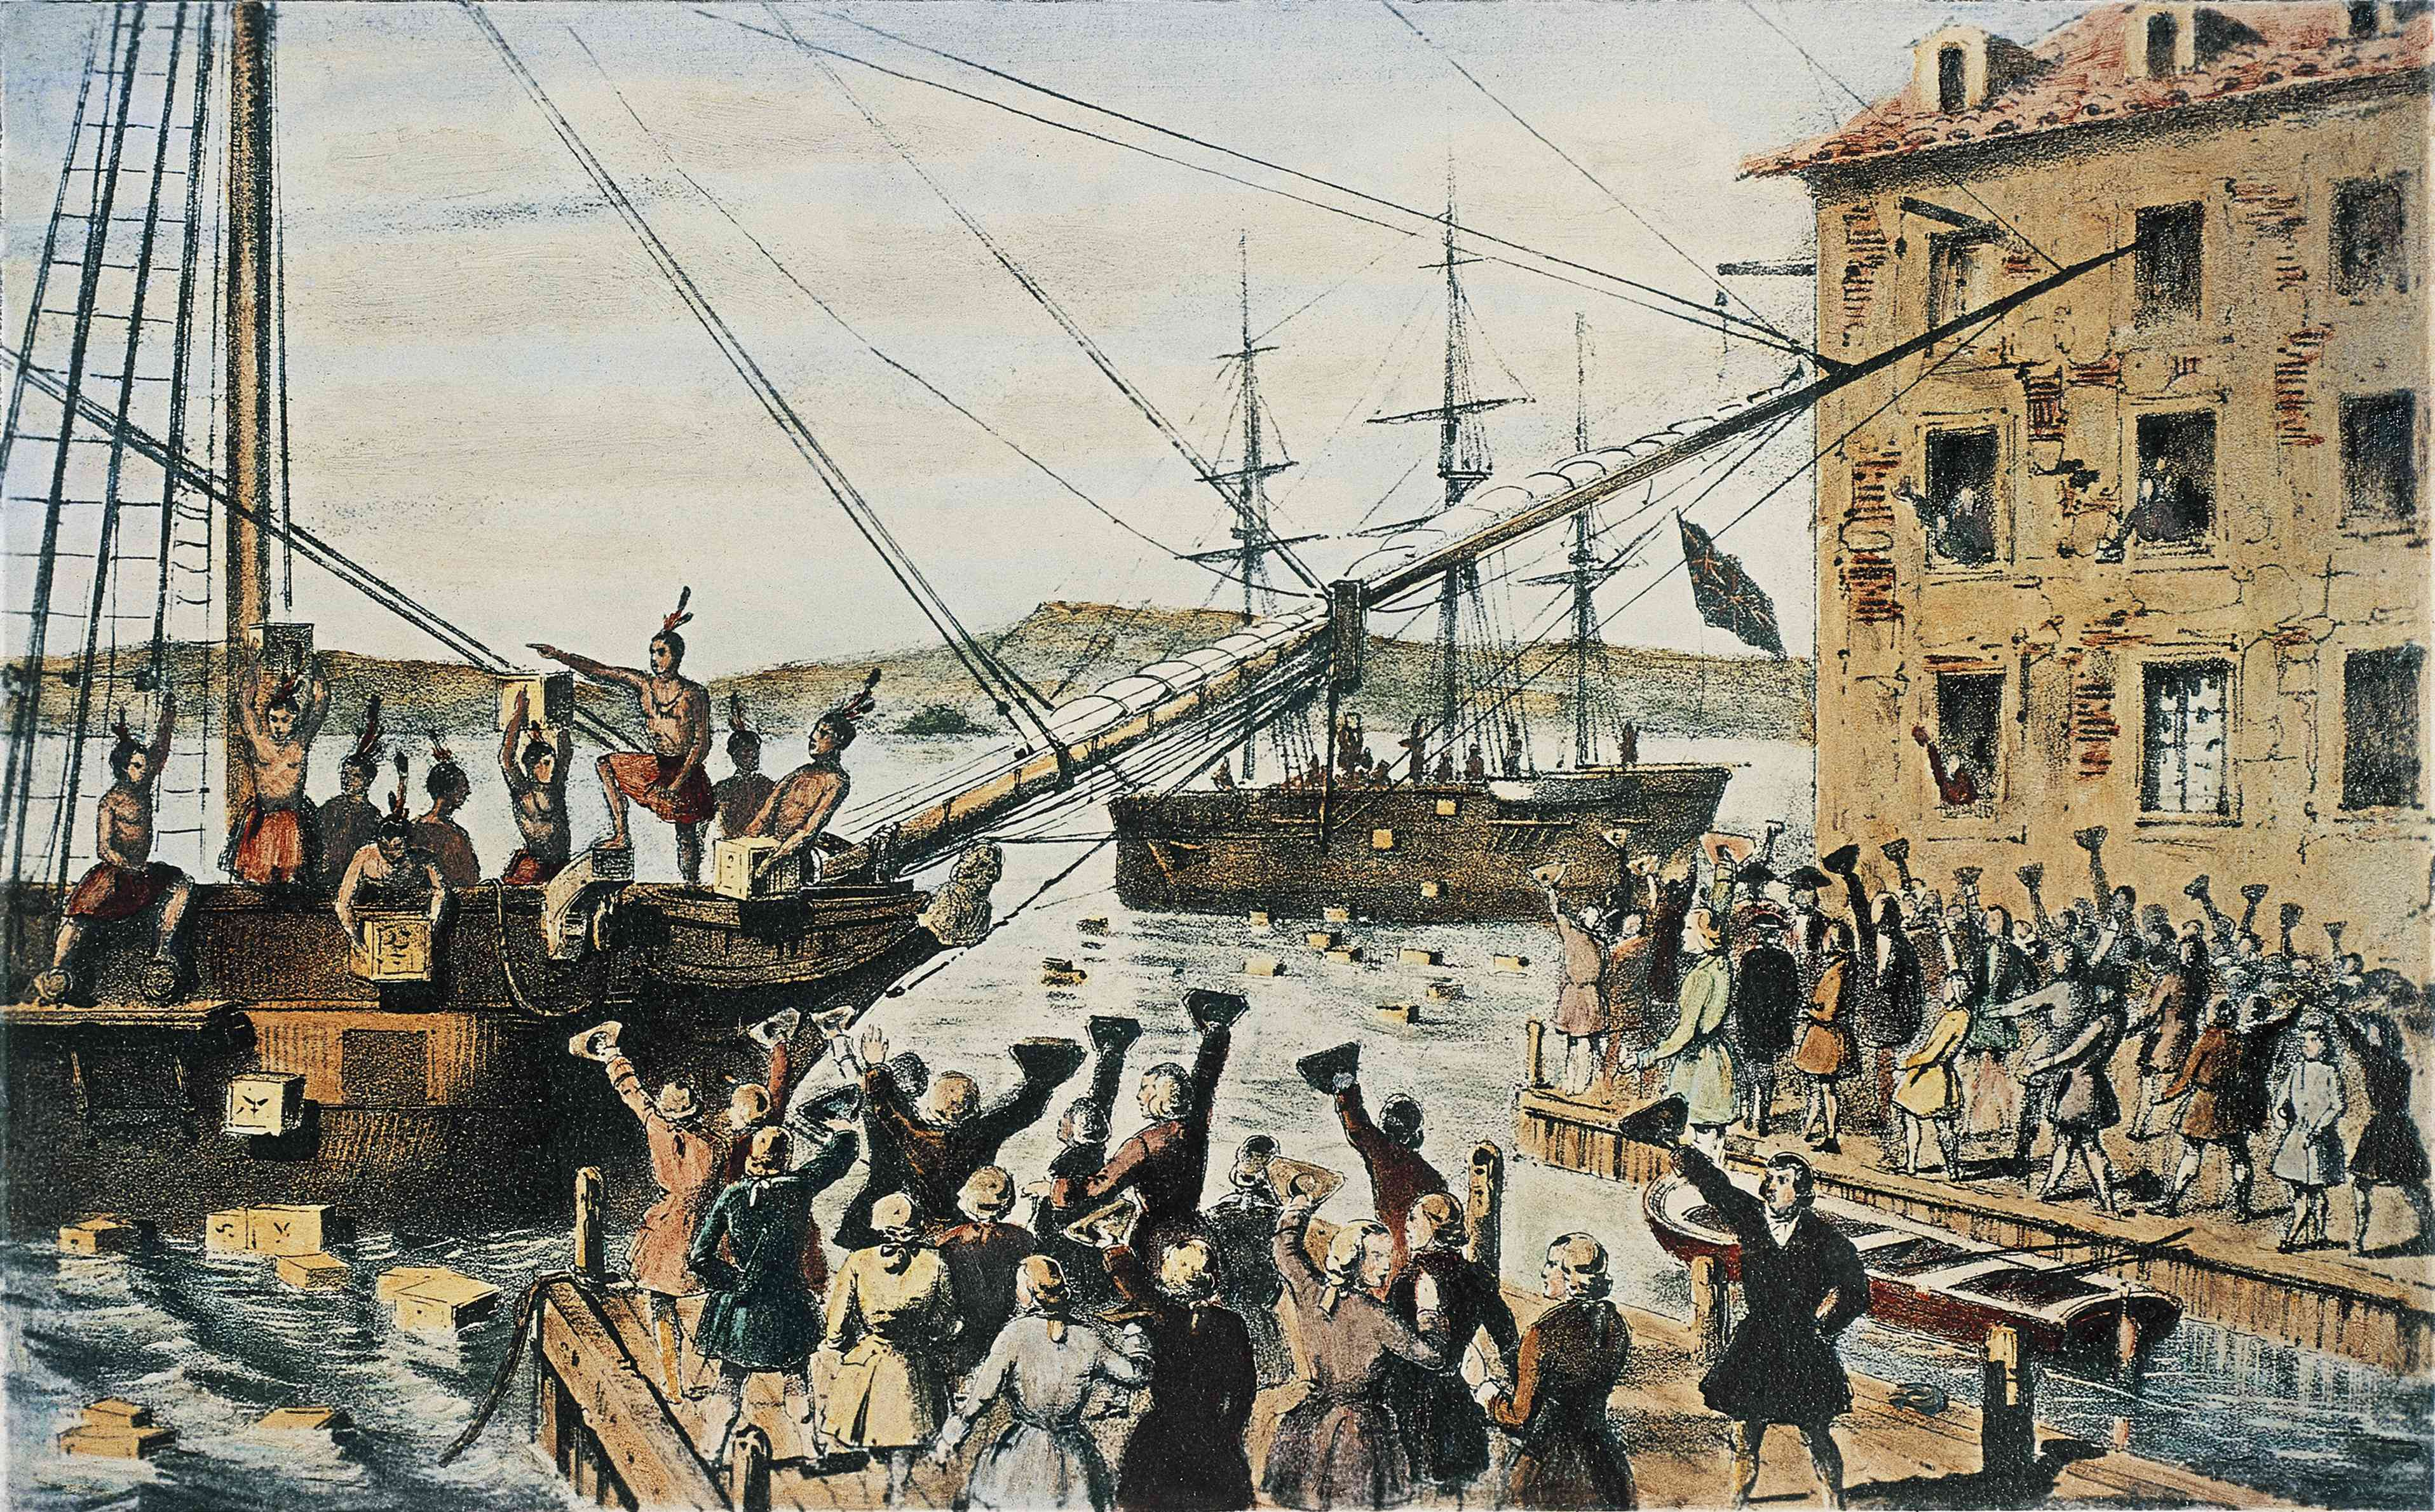 Boston Tea Party, English tea chests thrown overboard in Boston Harbor by colonists, December 16, 1773